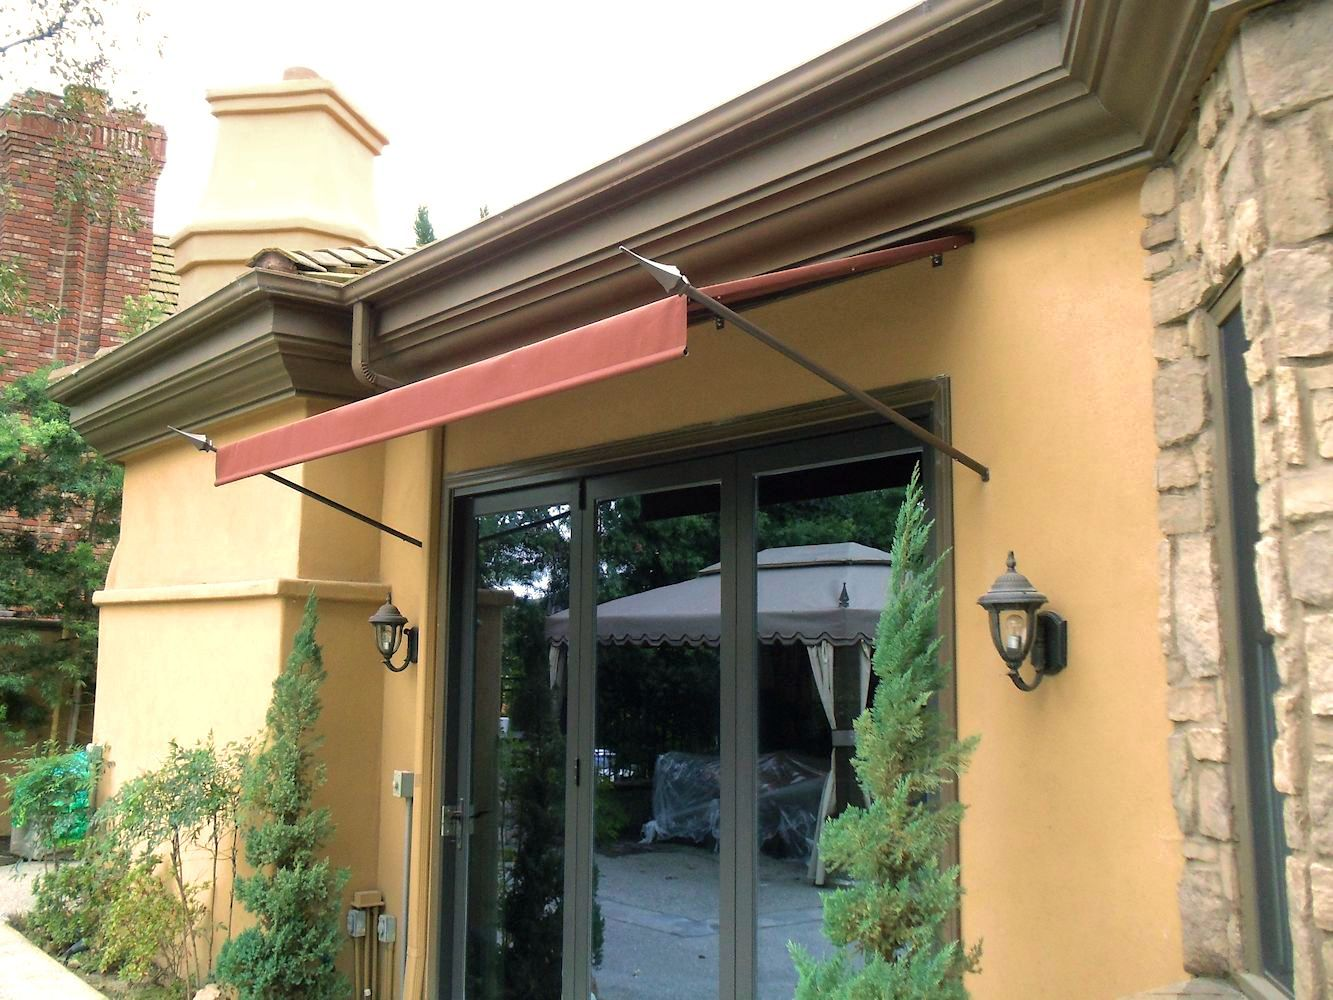 Spear or Scroll Awnings   Awning, Custom awnings ...